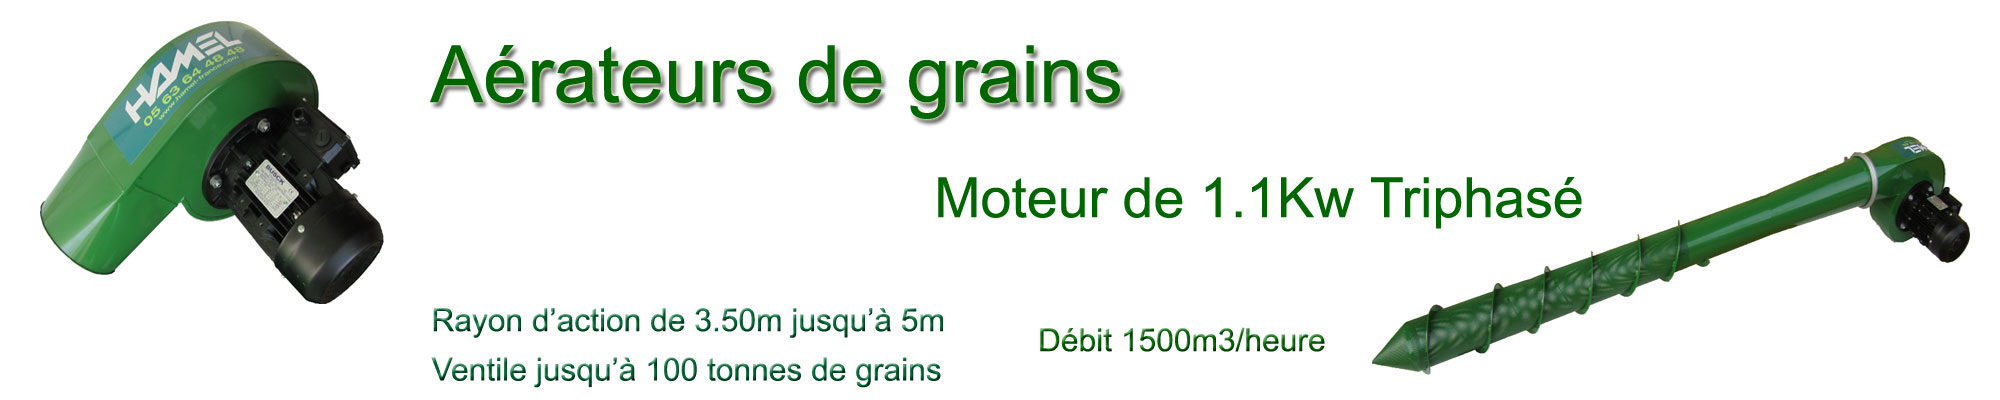 aerateur à grains